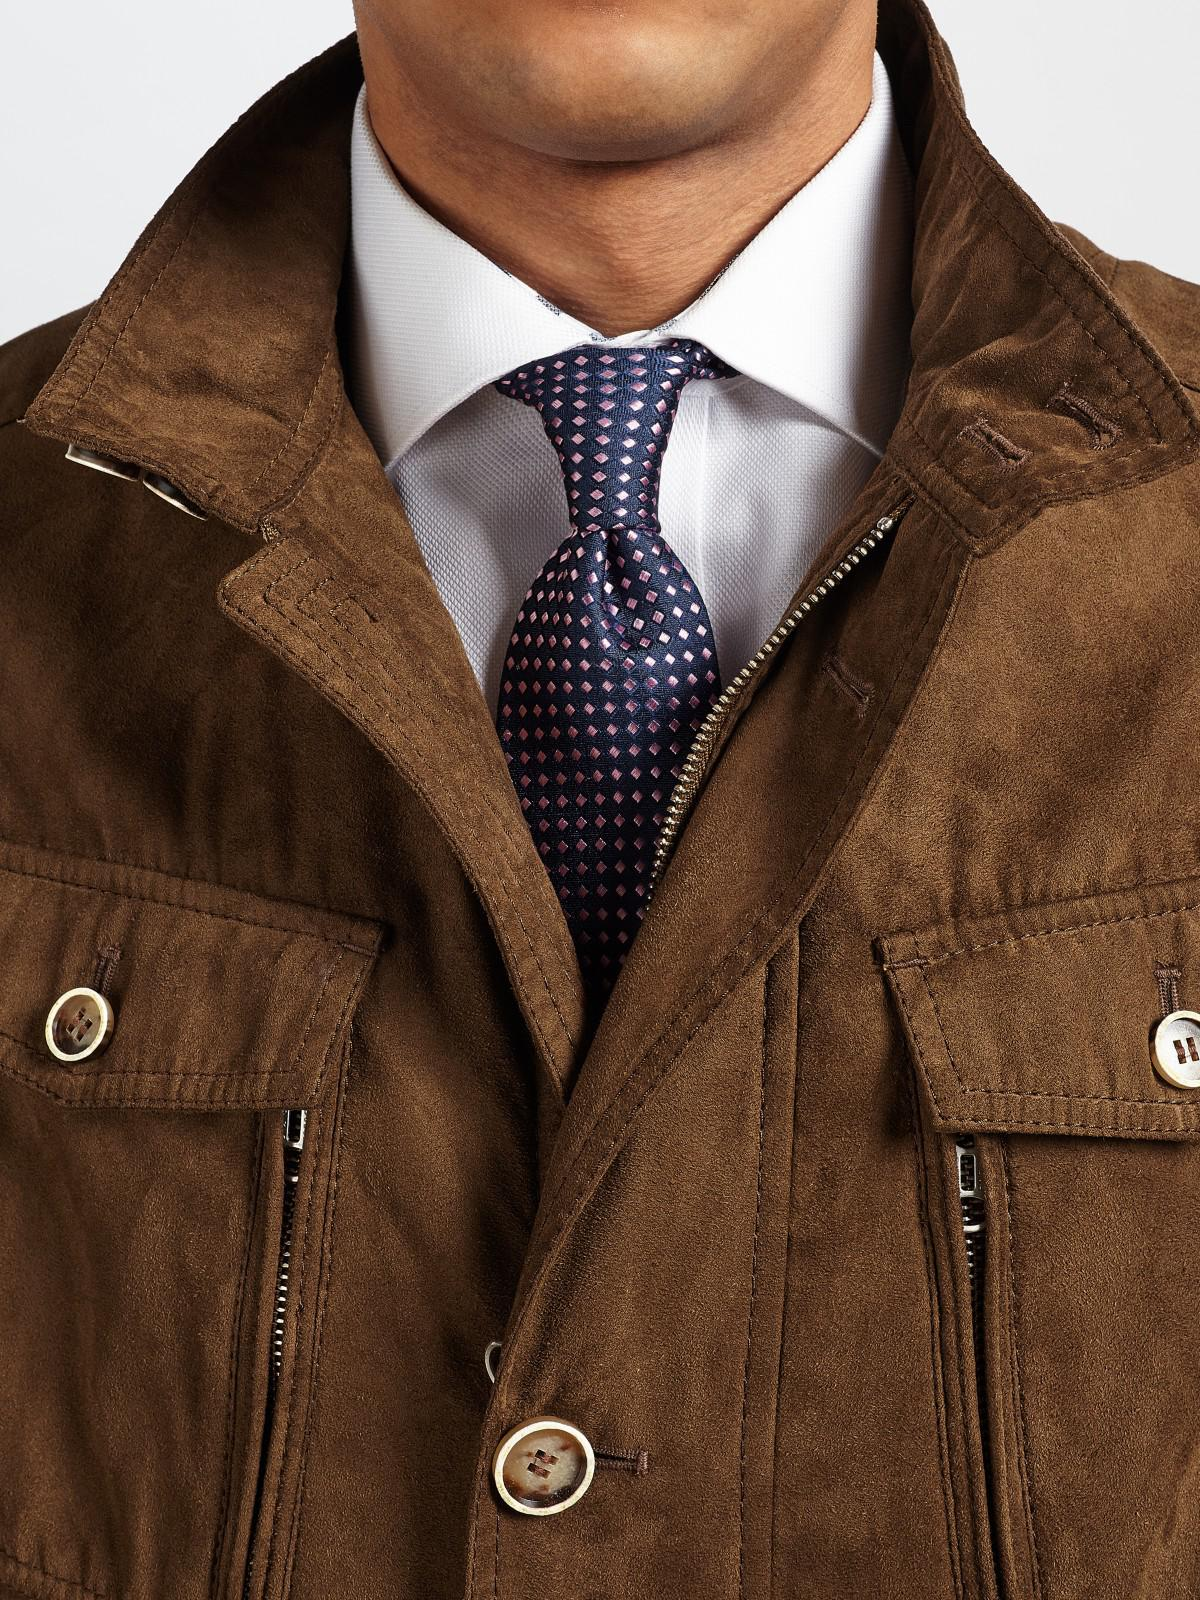 Bugatti Synthetic Microma Velour Water Repellent Two Pocket Jacket in Tobacco (Brown) for Men